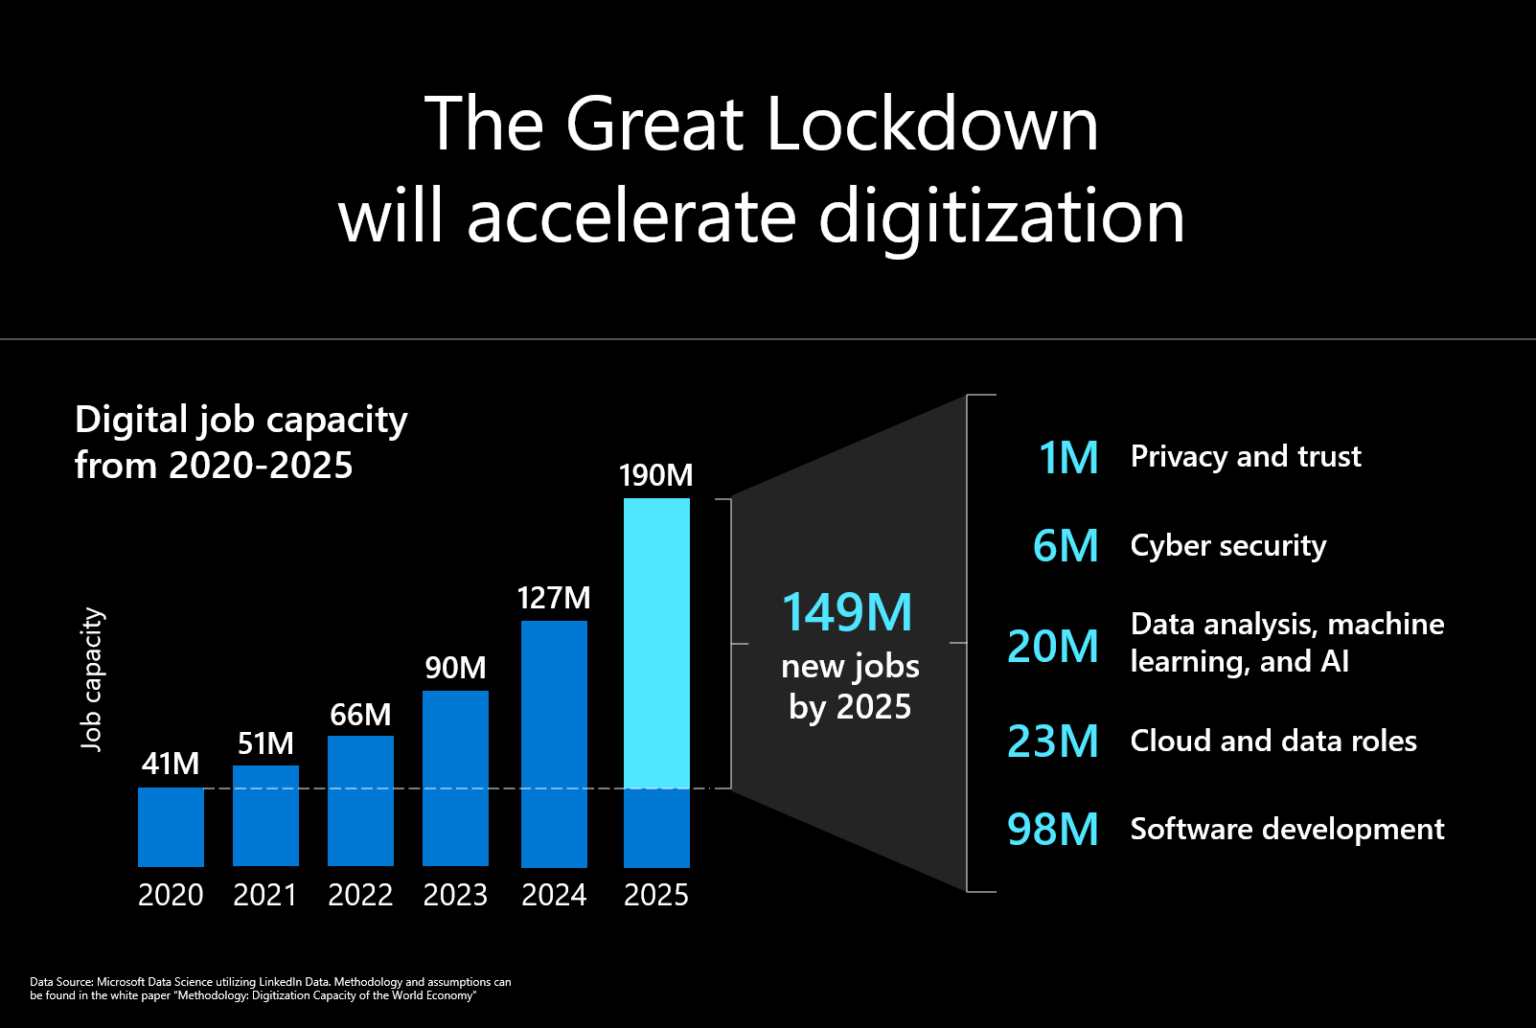 The Great Lockdown WIll Accelerate Digitization